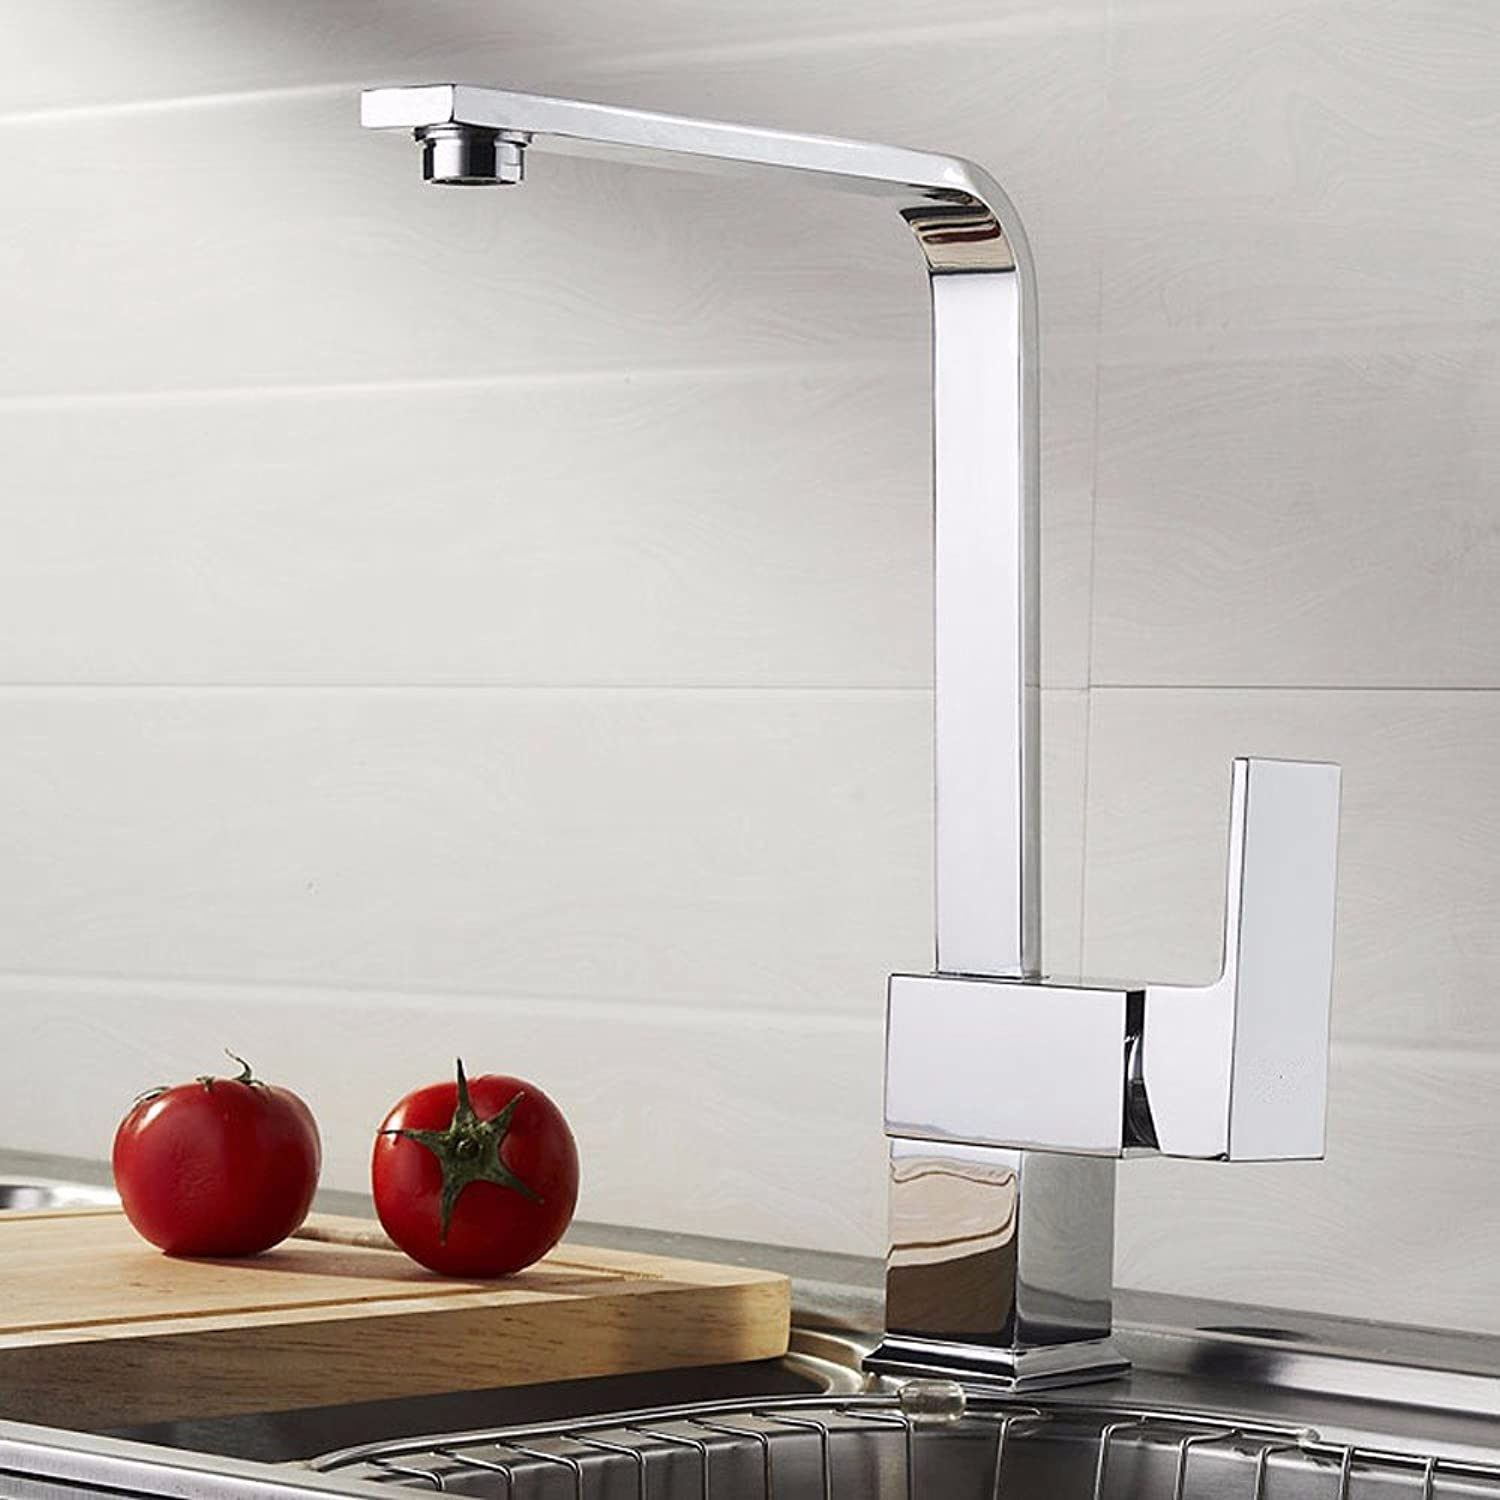 Gyps Faucet Basin Mixer Tap Waterfall Faucet Antique Bathroom ?The kitchen sink faucet full copper cold-hot water tap to redate the dish basin mixer Bathroom Tub Lever Faucet